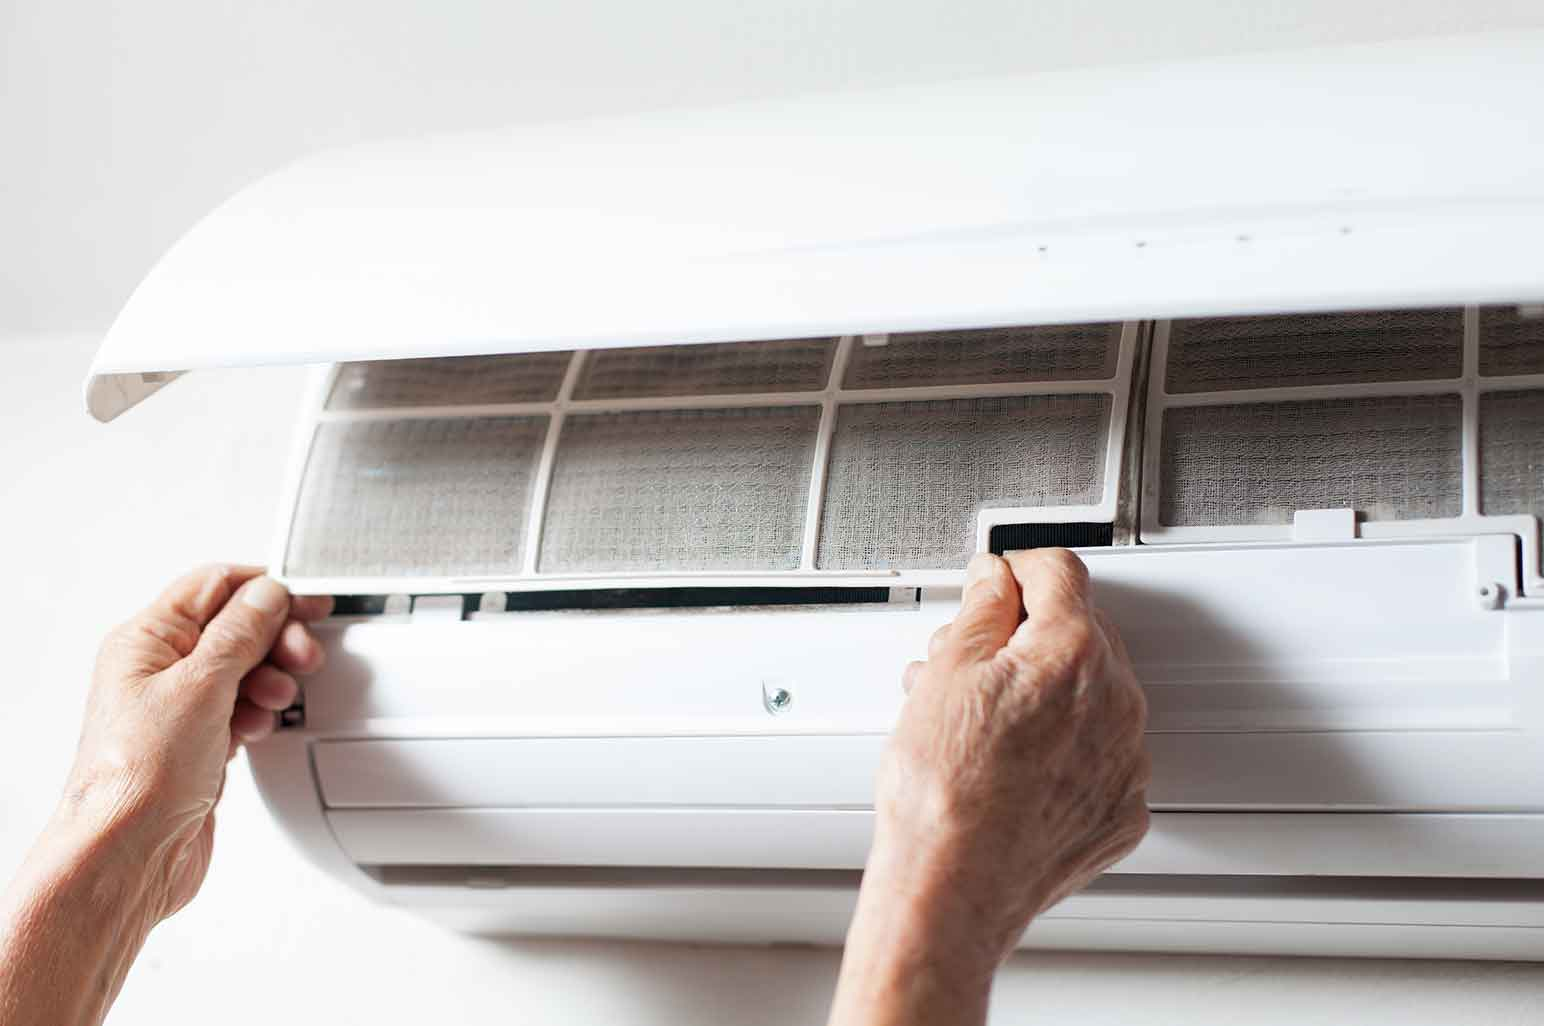 Purifier vs. Filter: Which Can Improve Indoor Air Quality